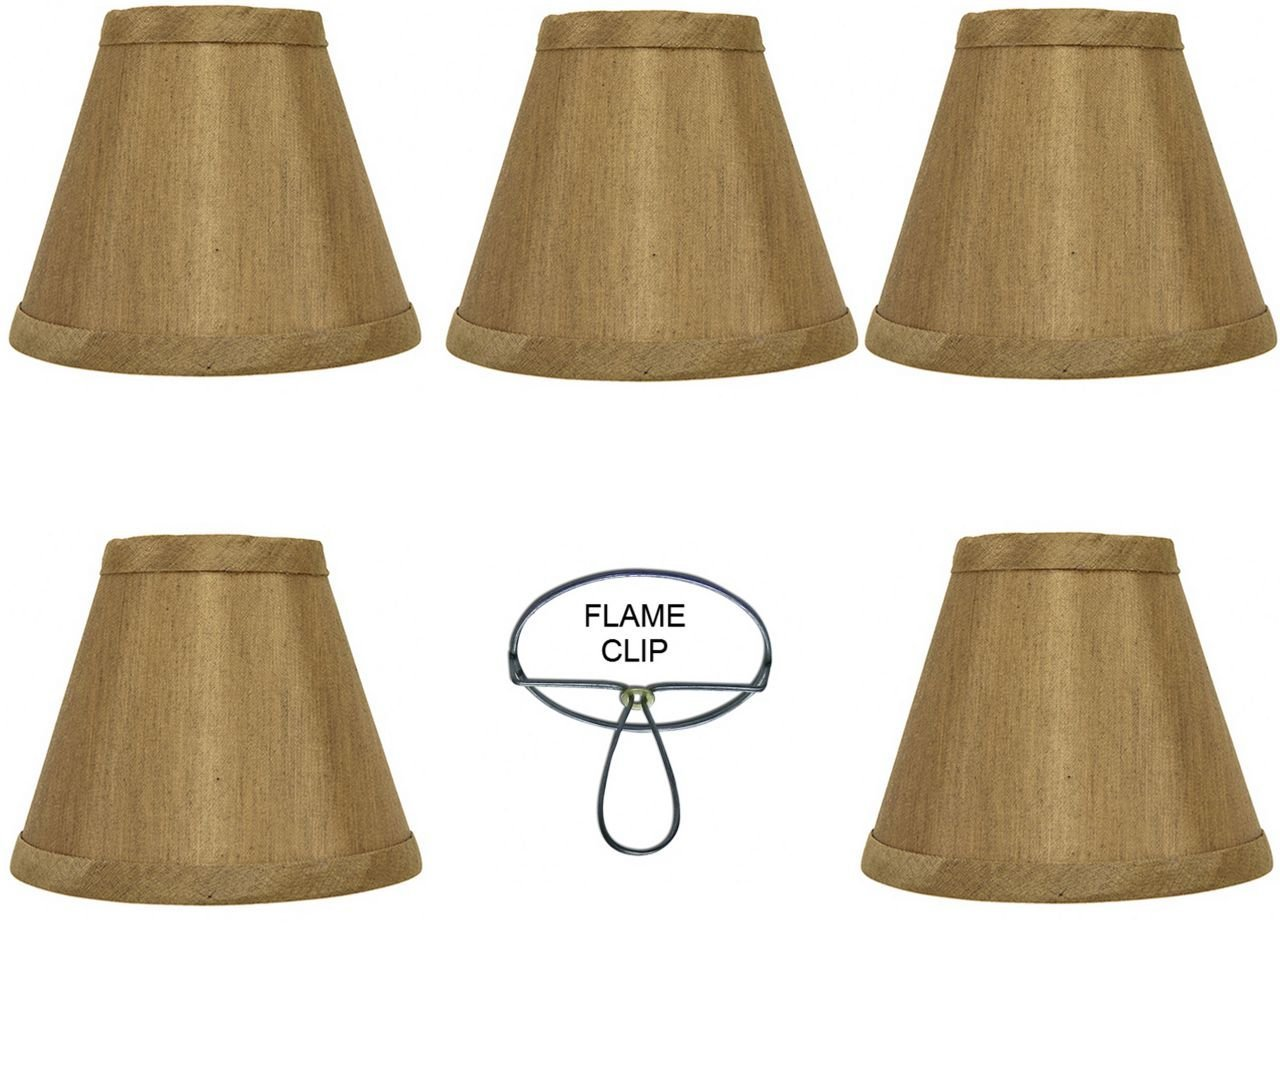 Cheap gold lamp shades find gold lamp shades deals on line at get quotations mini chandelier shades clip on small lamp shades set of five rich antique gold bronze aloadofball Choice Image